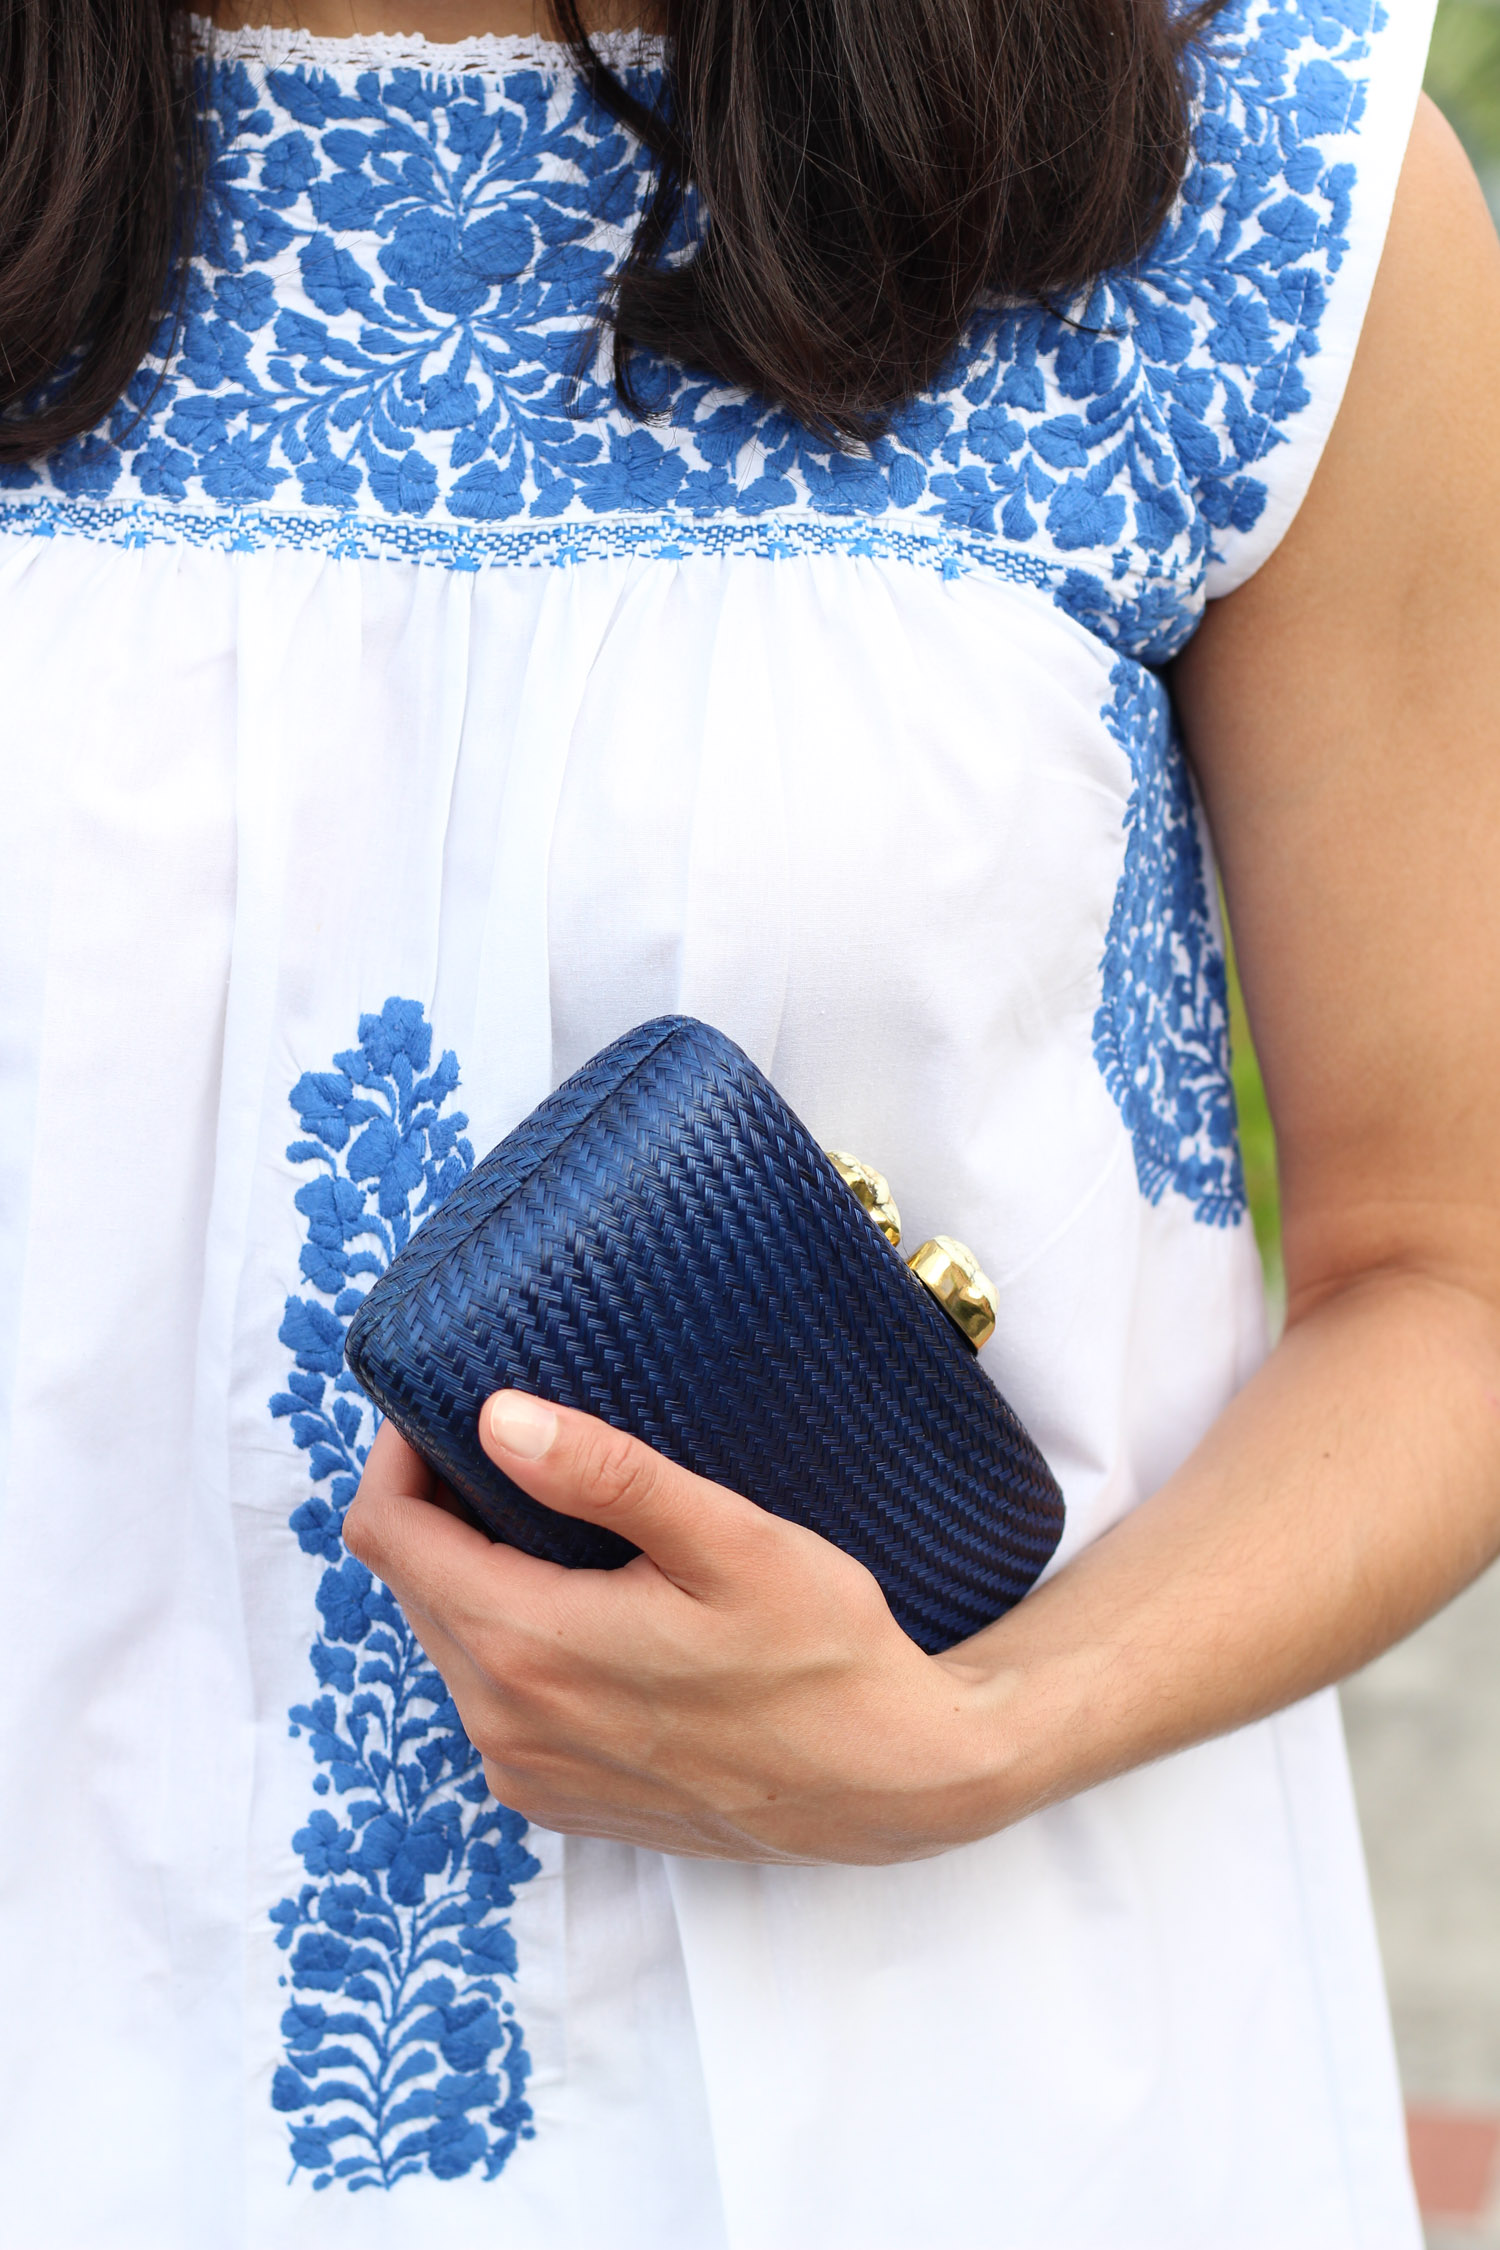 Kayu clutch | Mi Golondrina blue and white top featured by popular DC style blogger, Monica Dutia